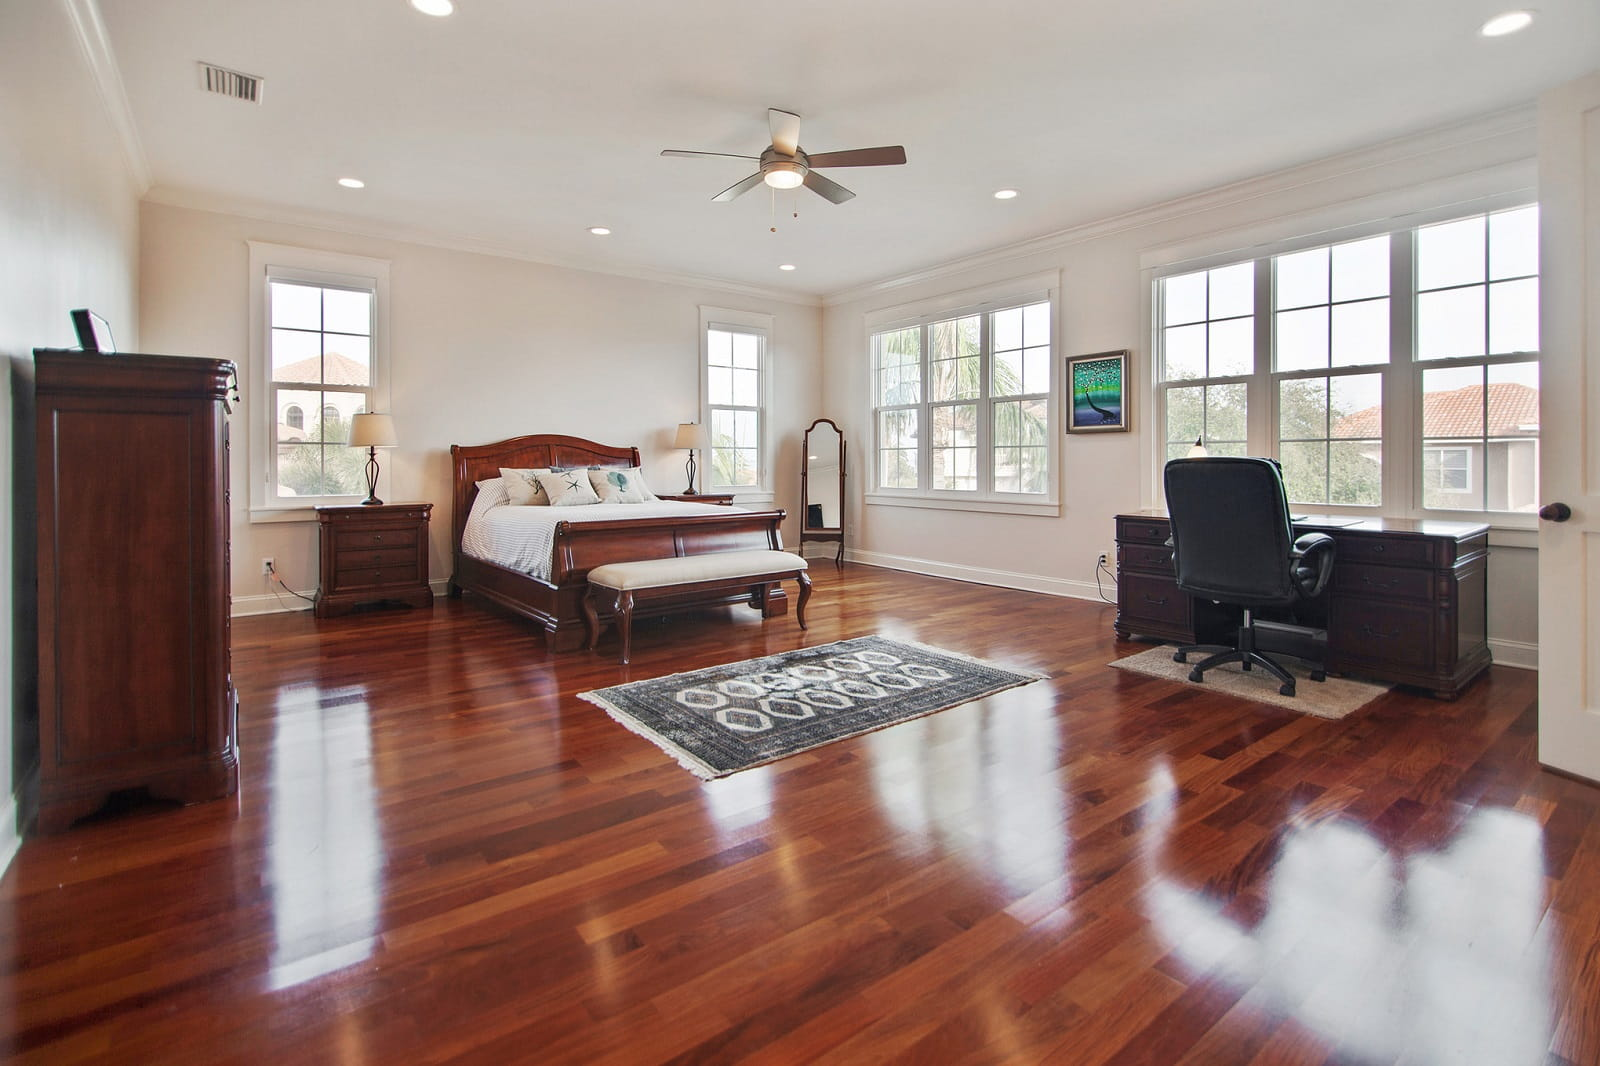 Real Estate Photography in St. Petersburg - FL - USA - Bedroom View